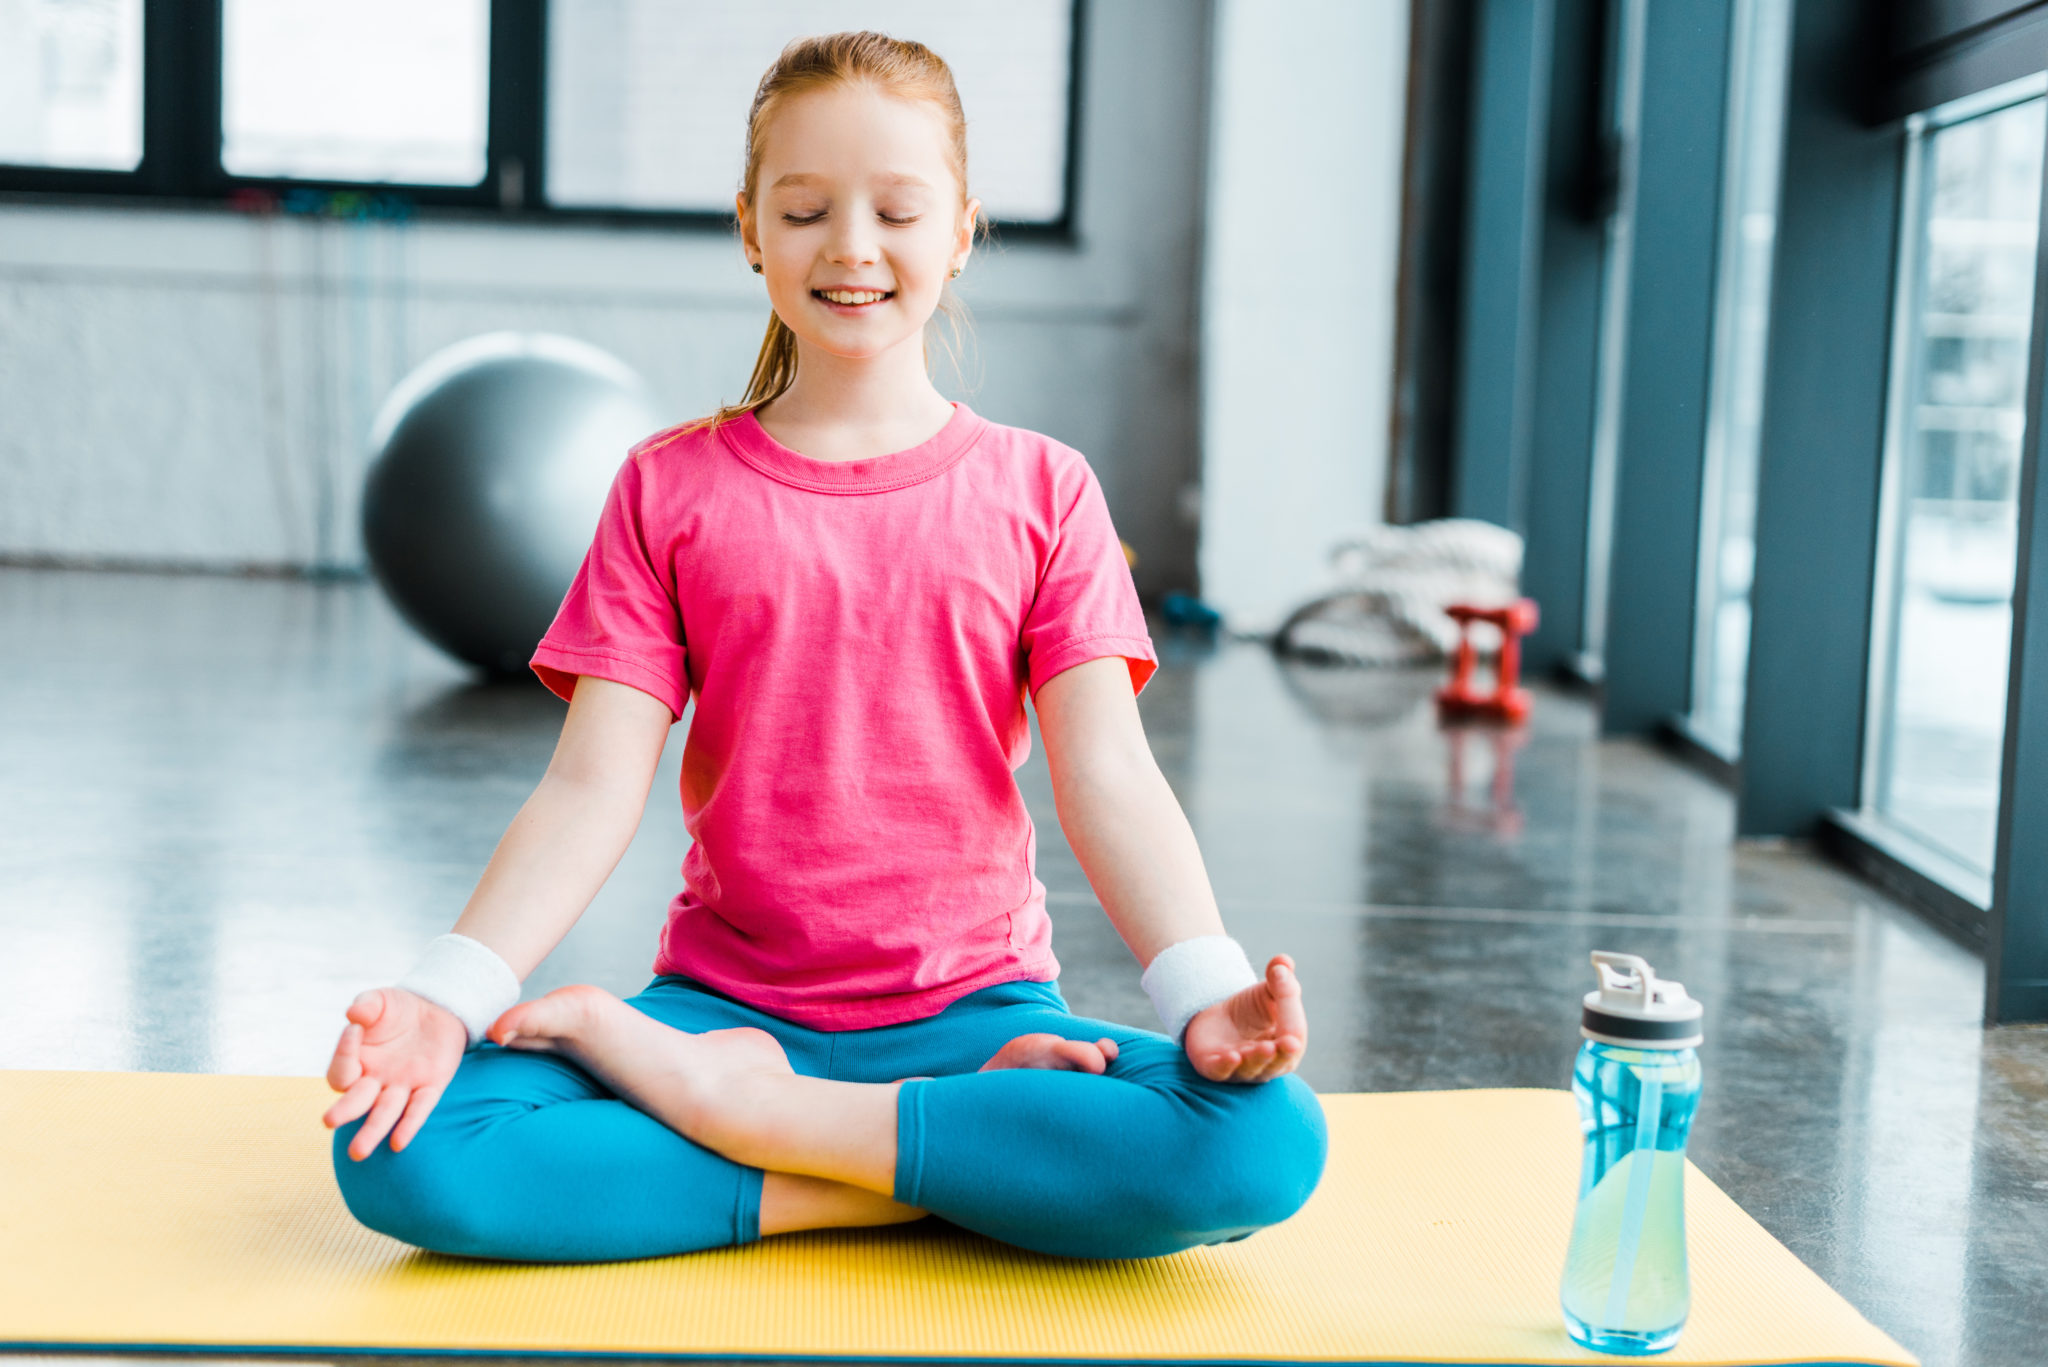 Bring Calm To Chaos: 6 Simple Mindfulness Exercises For Kids